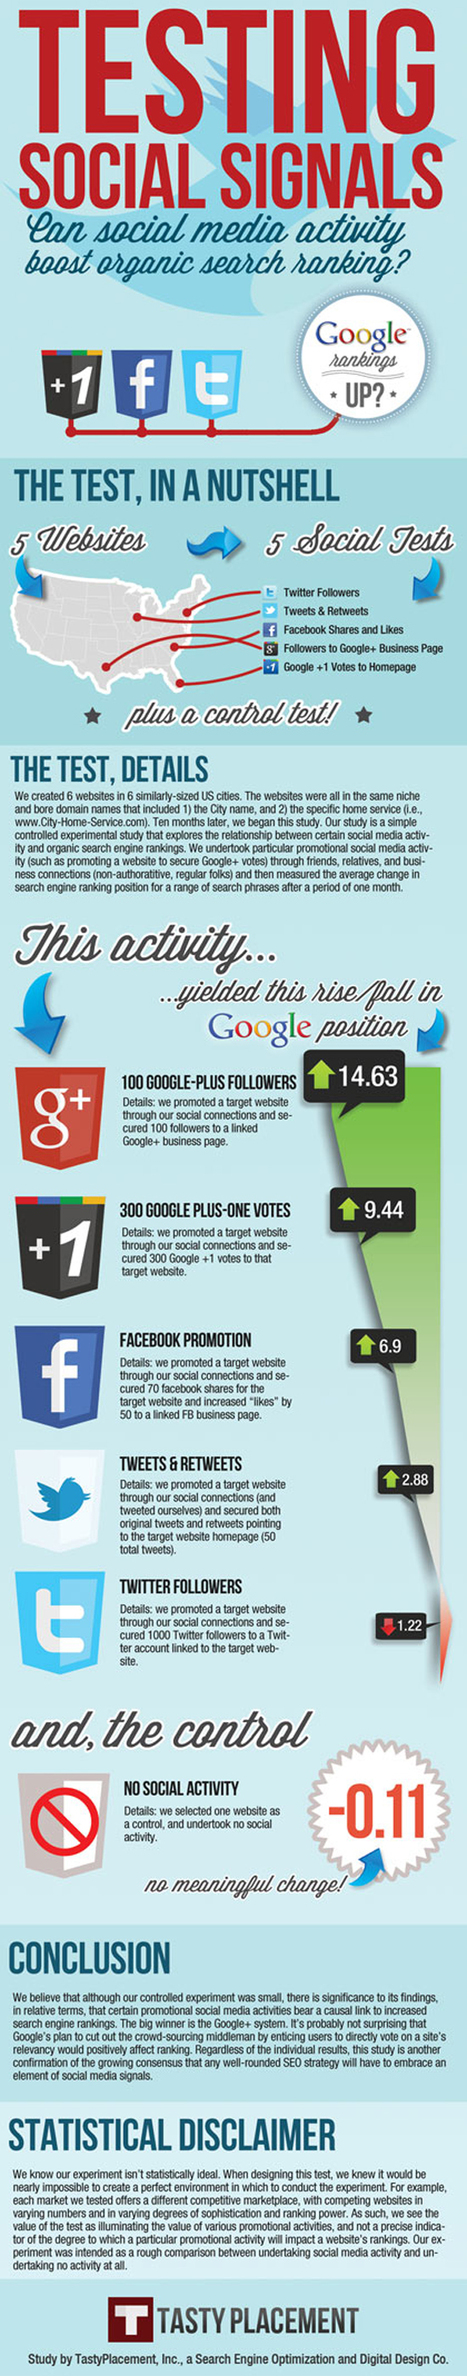 Using Google+ Is The Best Way To Boost Your Website's Search Ranking With Social | Multimedia Journalism | Scoop.it